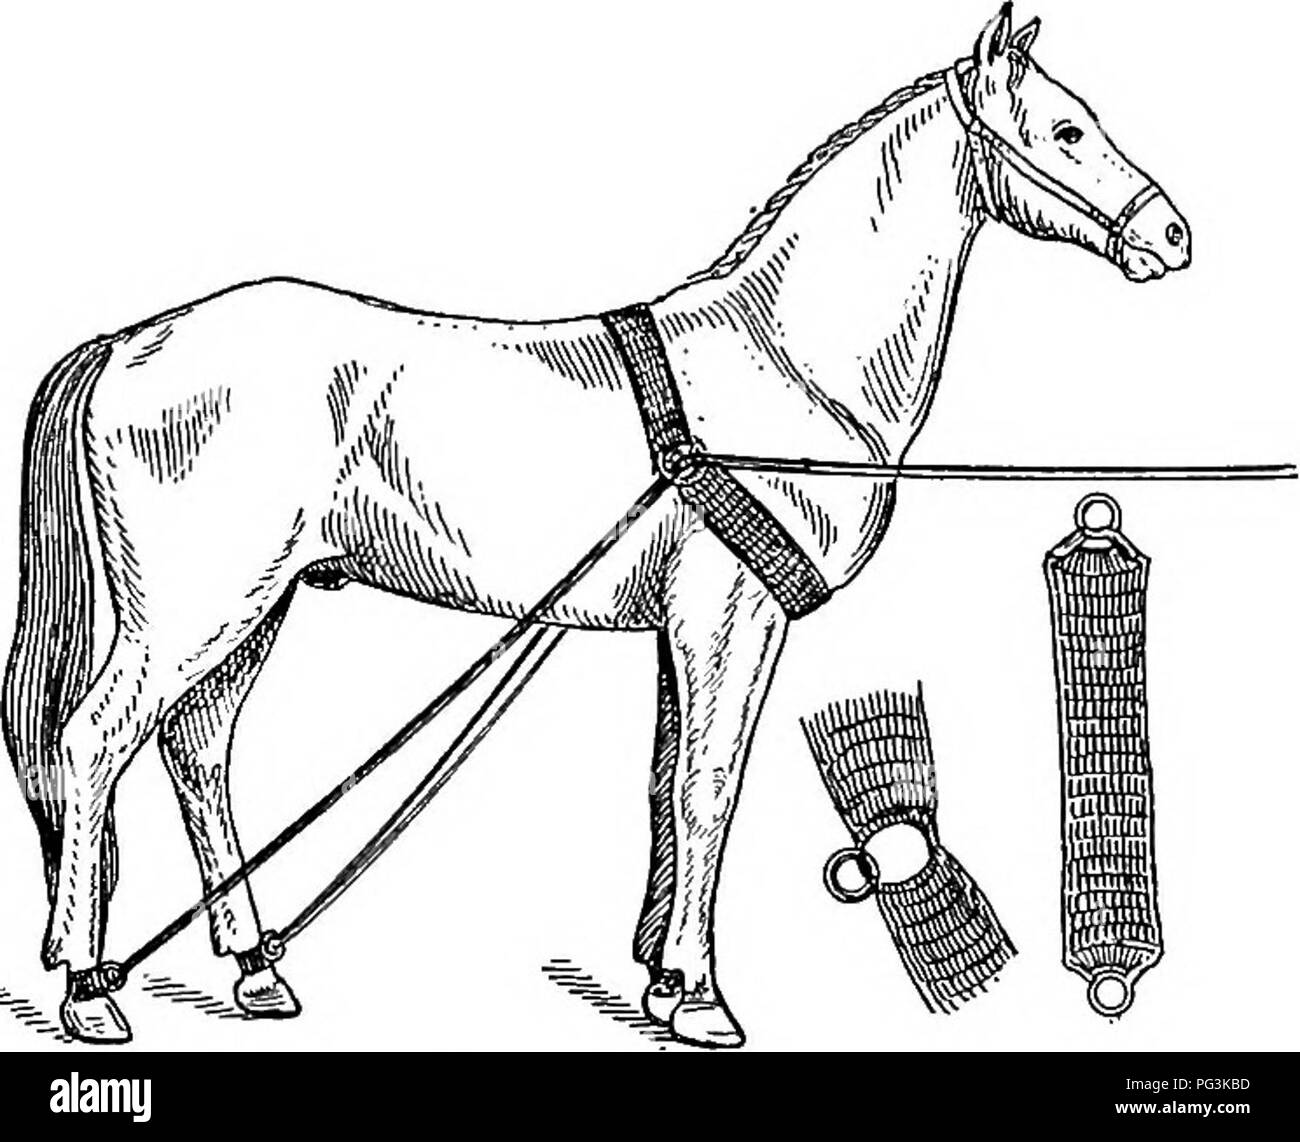 . The horse in health and disease : a text-book pertaining to veterinary science for agricultural students . Horses; Horses. METHODS OF RESTRAINT AND COMMON OPERATIONS 185 Knowles' casting harness is simple in construction, besides being cheap, durable, and easy to apply (Fig. 58). It consists of a wide web collar, from which ropes extend backward on each side to the hind pasterns. The free ends of the ropes are used to tie the feet. Fig. 58.—Knowles' casting harness. and legs after the animal is thrown. An improvised harness for emergency use to answer the same purpose can be constructed on t Stock Photo